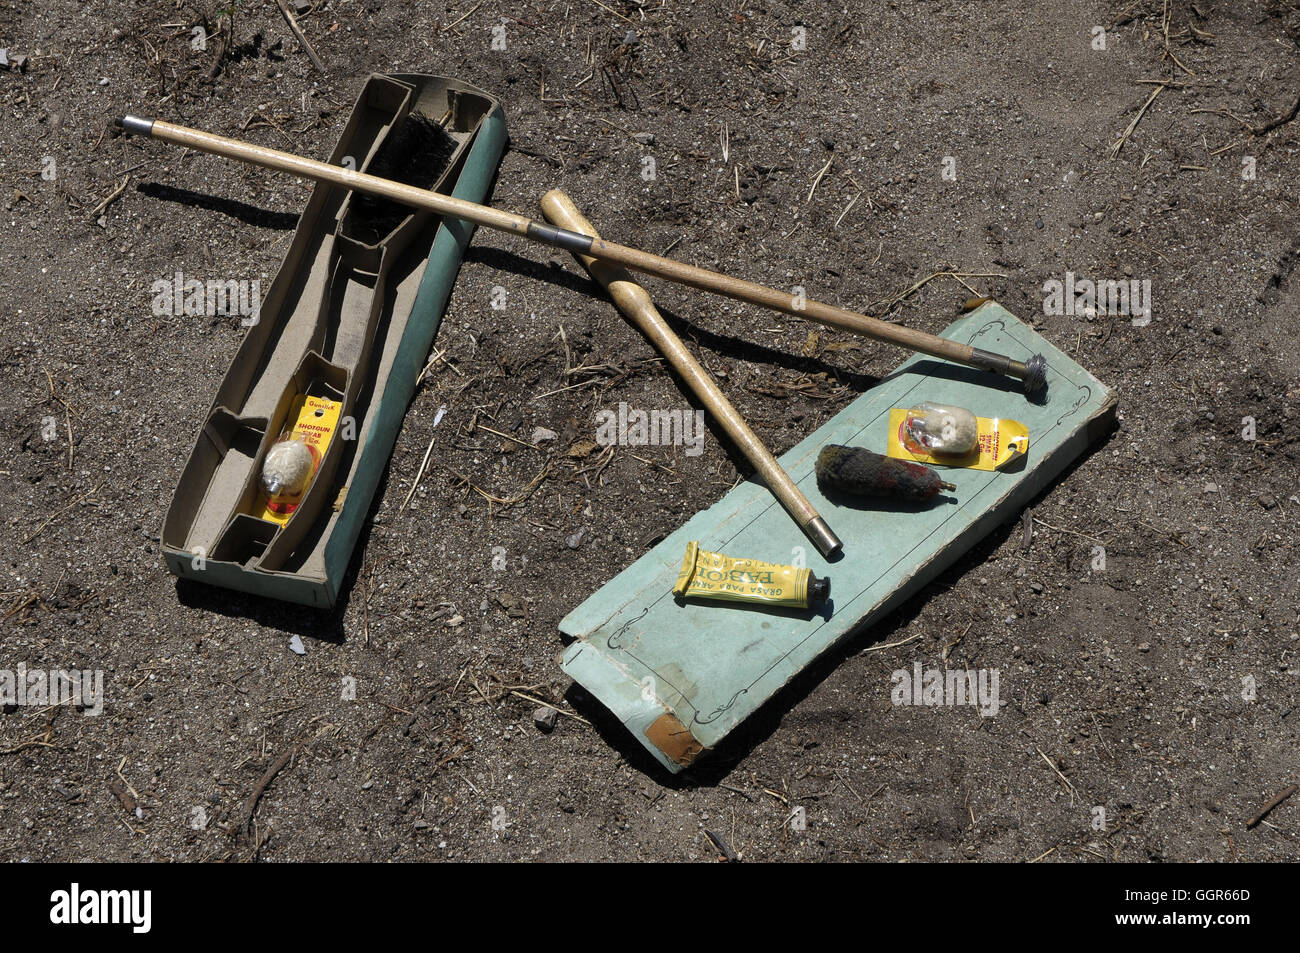 Weapon and gun cleanning maintenance kit - Stock Image